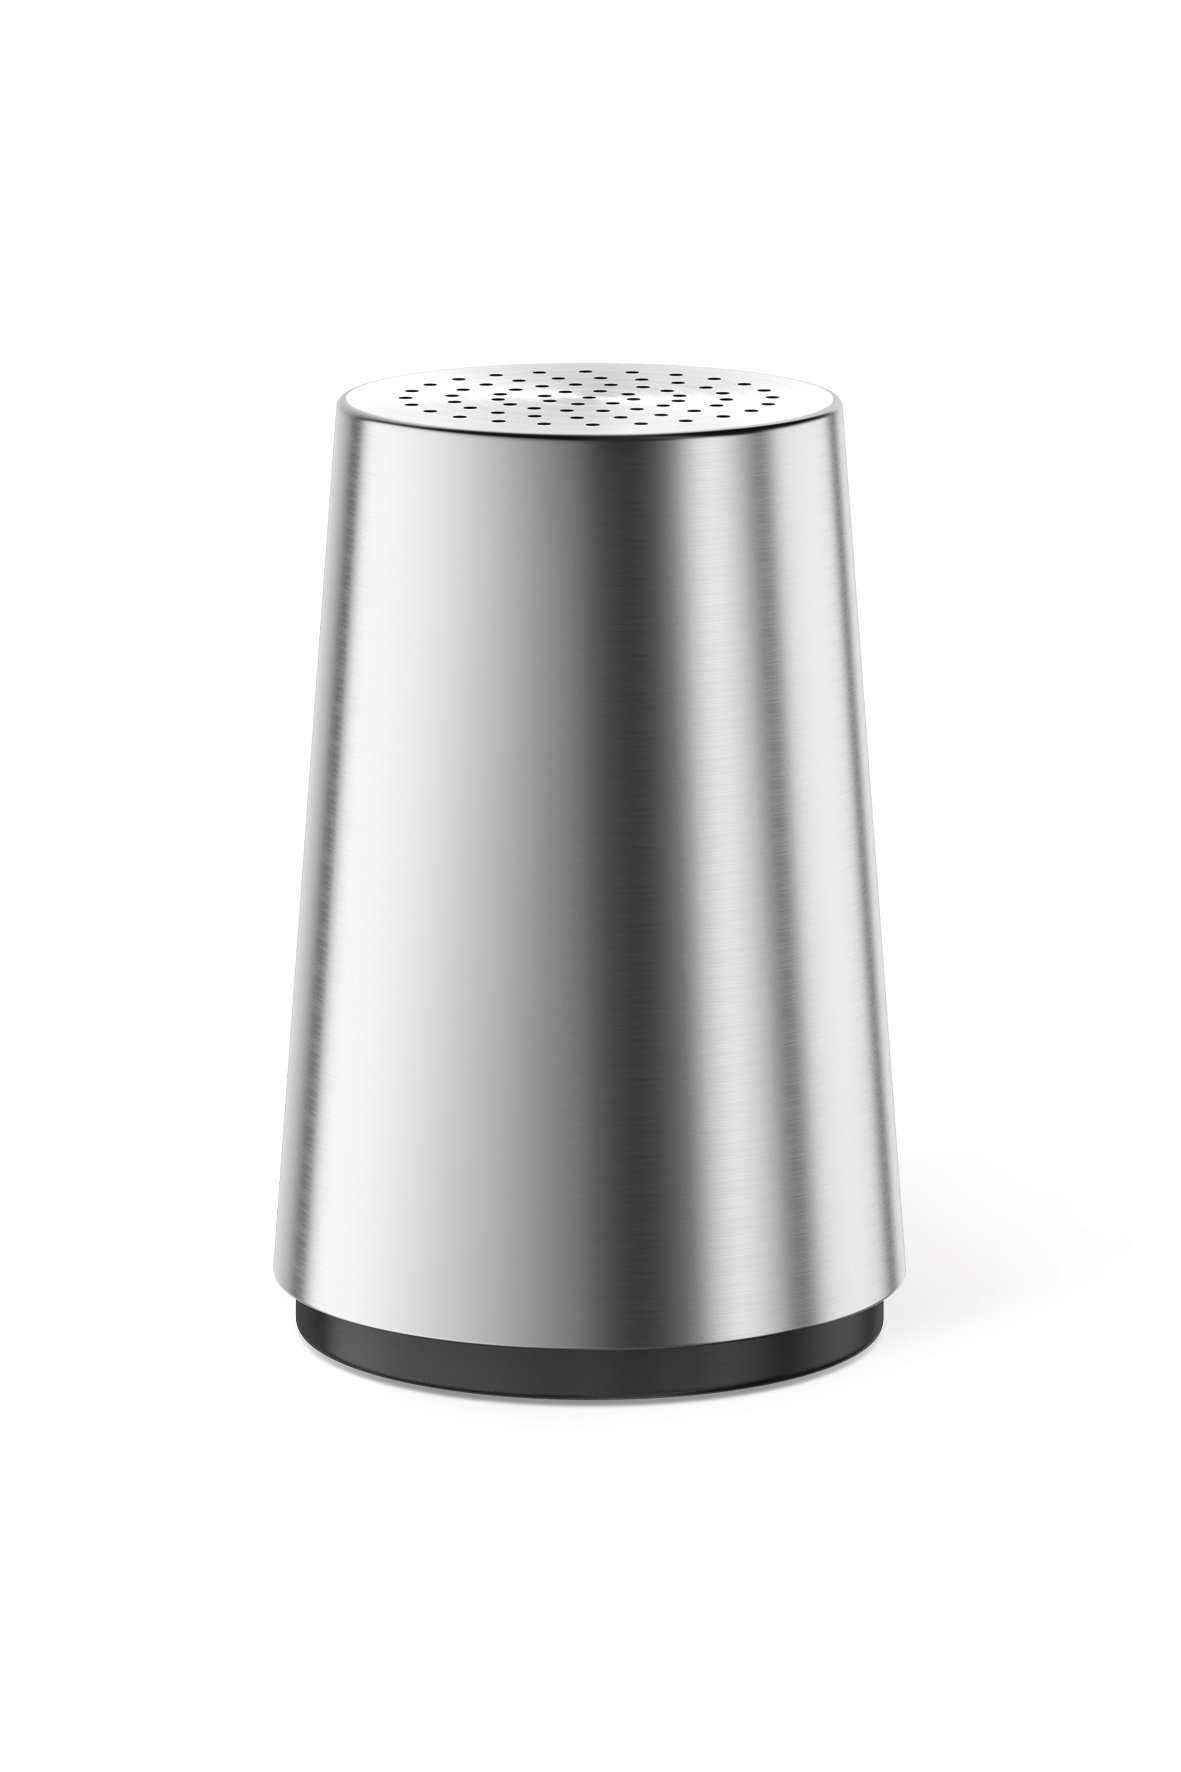 ZACK 20632 Toco Cocoa Shaker, 3.94 by 2.76-Inch by Zack